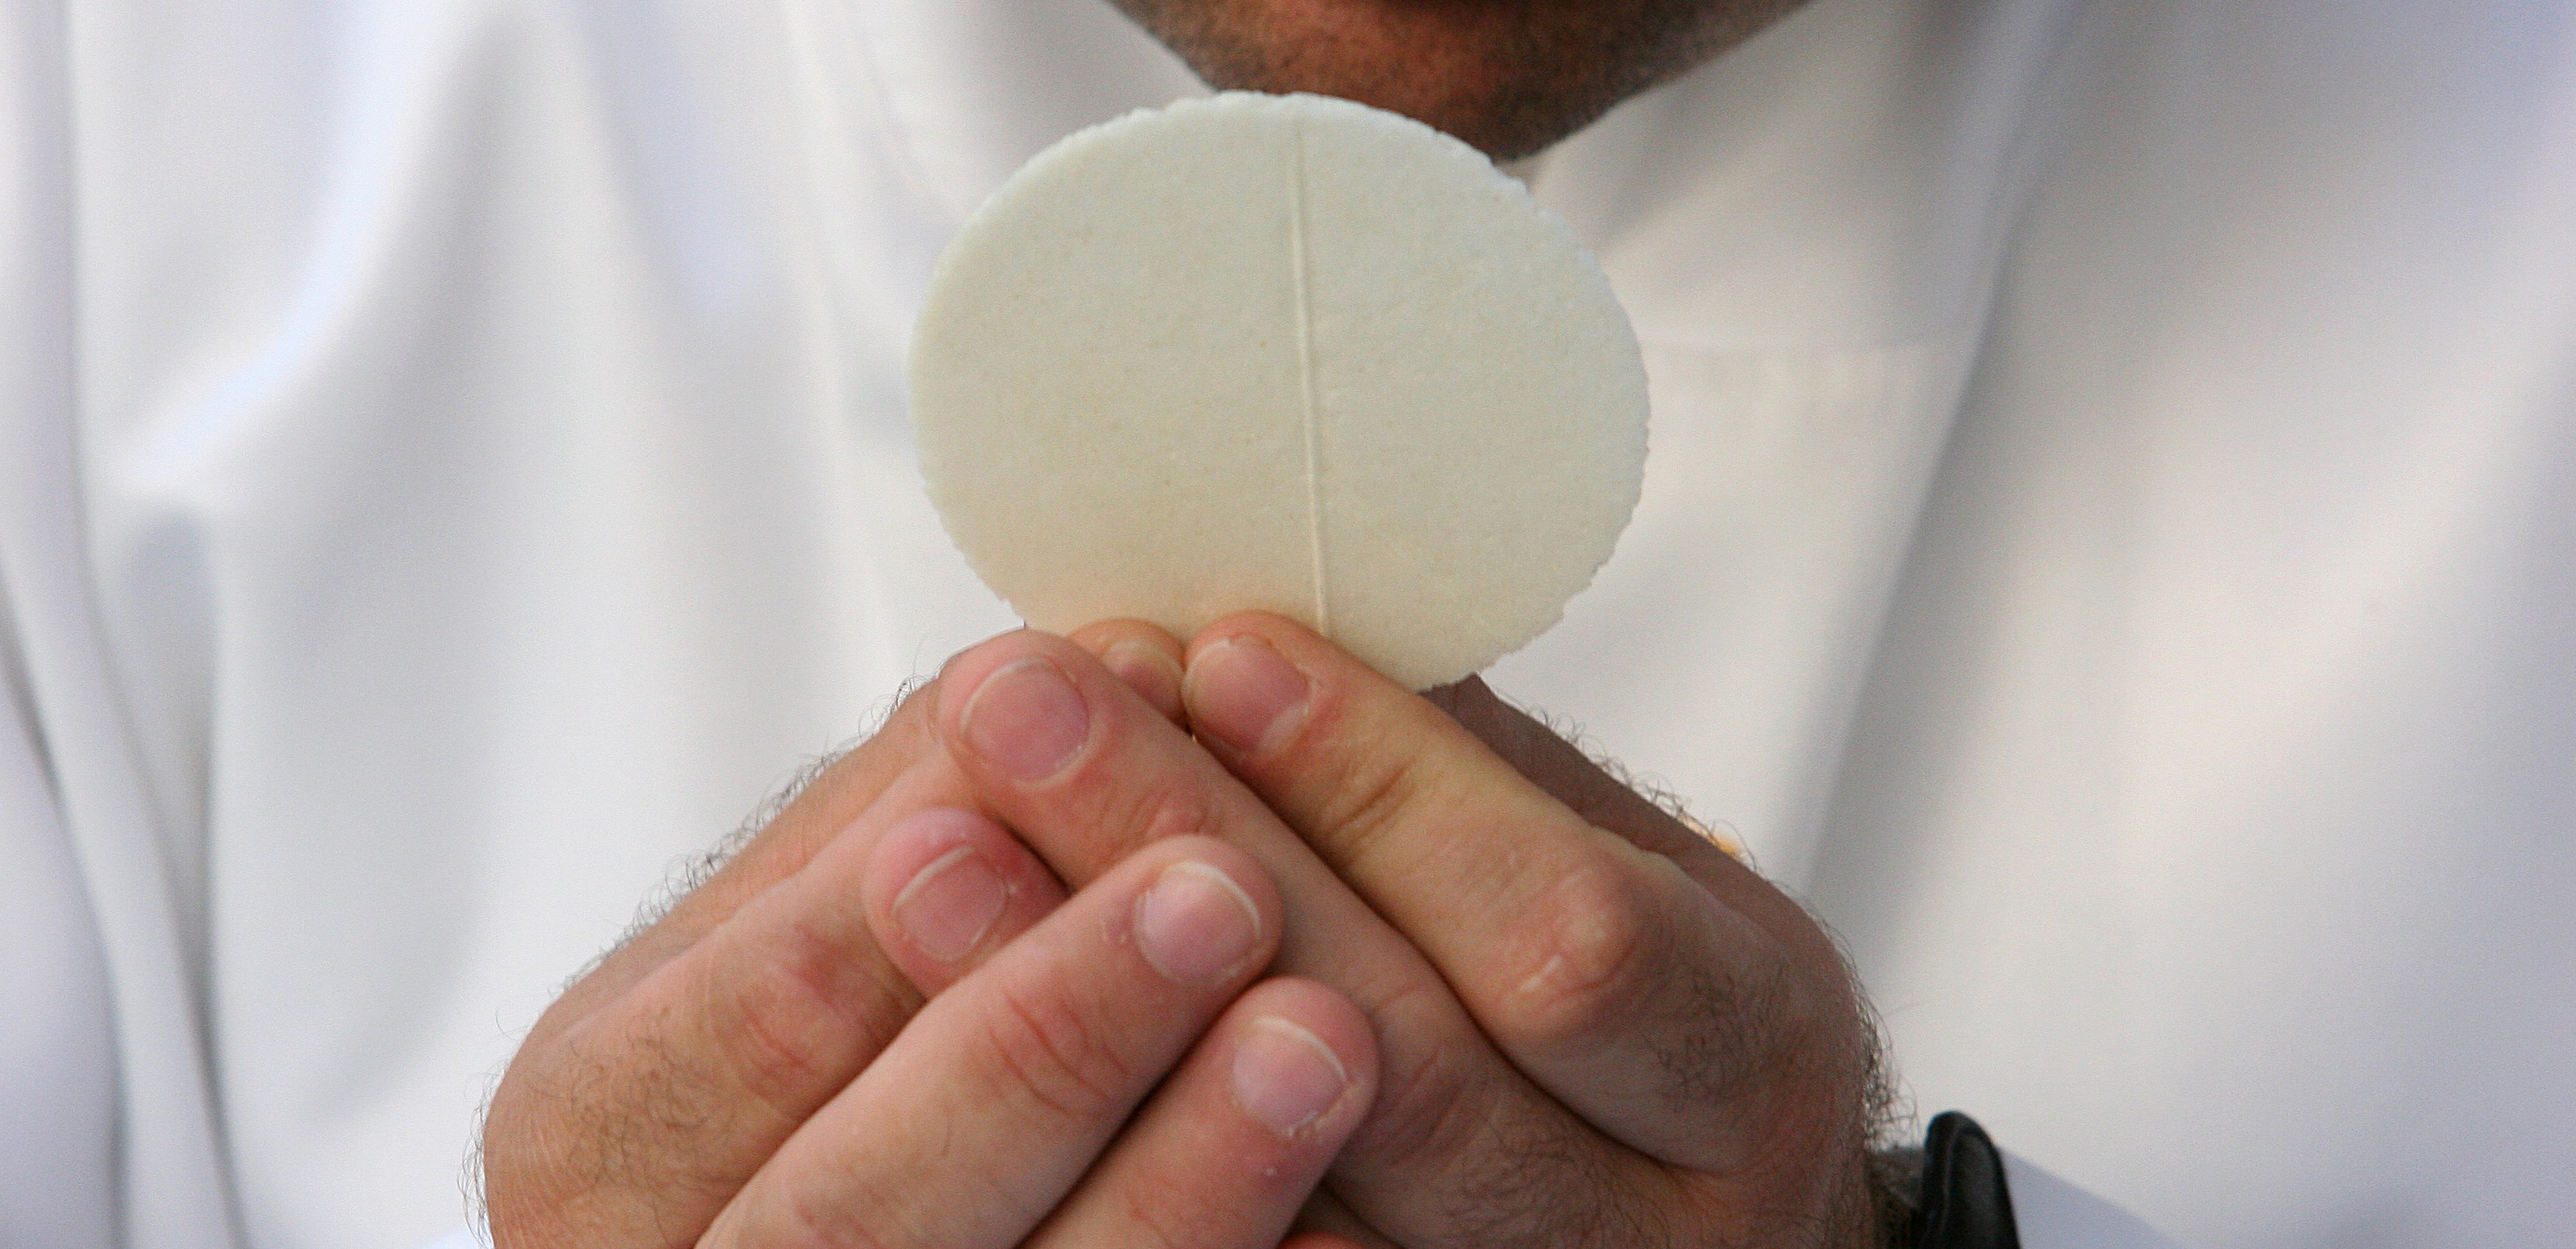 WEB2-COMMUNION-EUCHARISTIE-HOSTIE-GODONG-DE354465C-e1605635059906.jpg